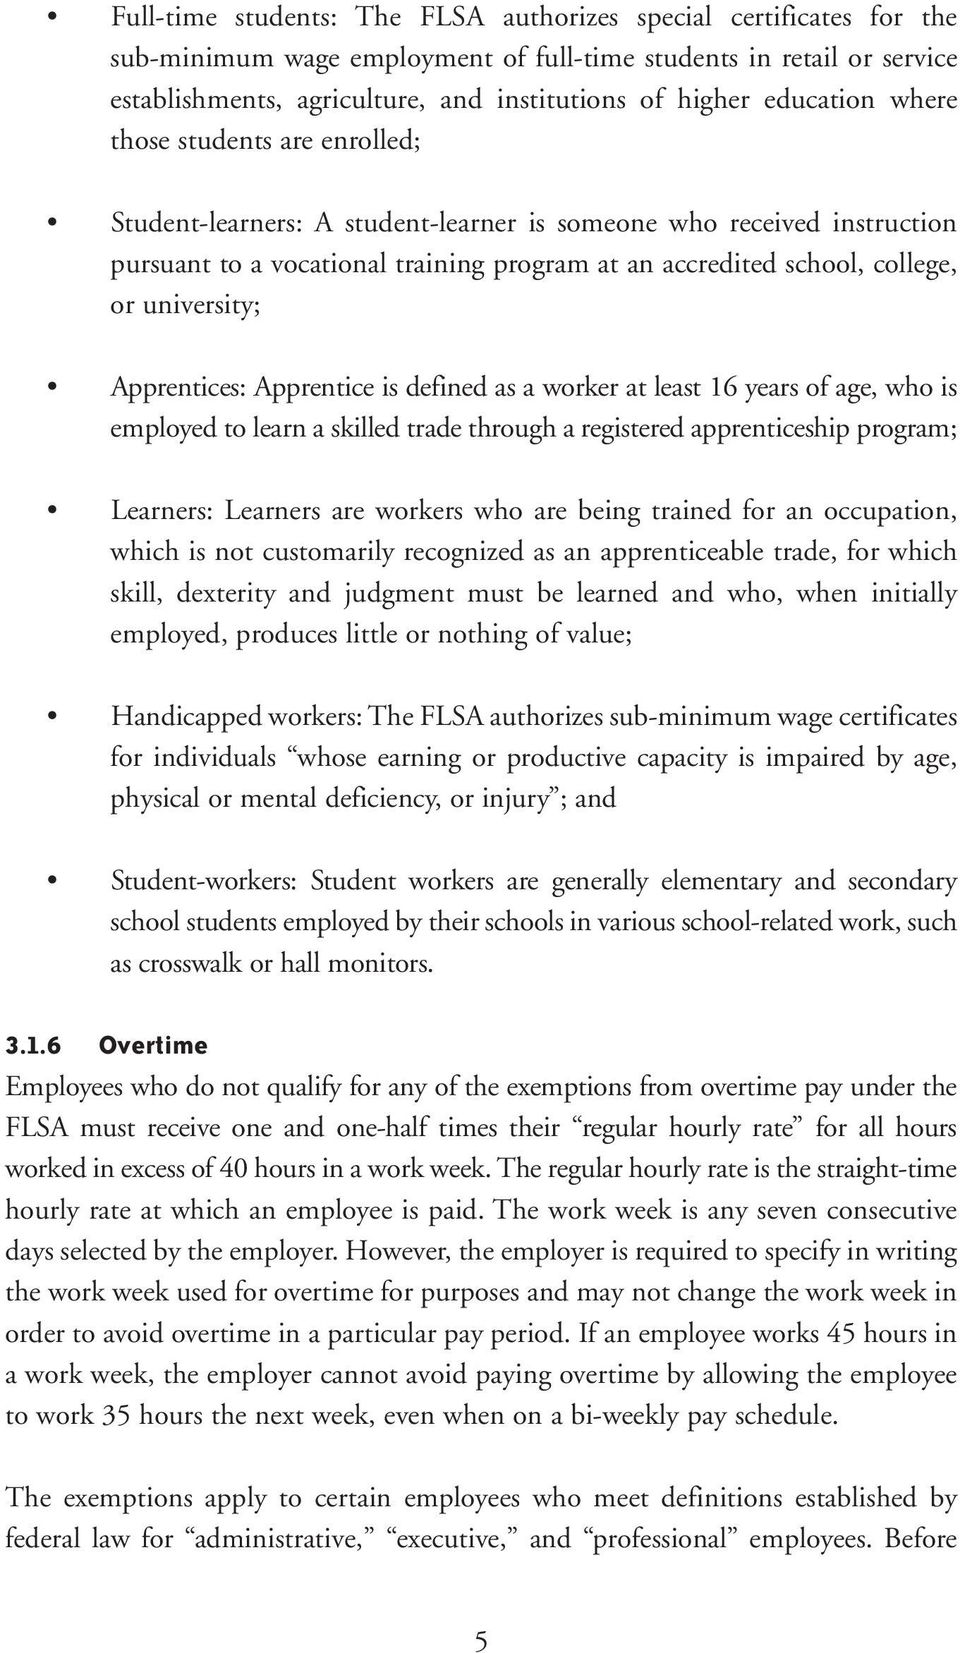 university; Apprentices: Apprentice is defined as a worker at least 16 years of age, who is employed to learn a skilled trade through a registered apprenticeship program; Learners: Learners are